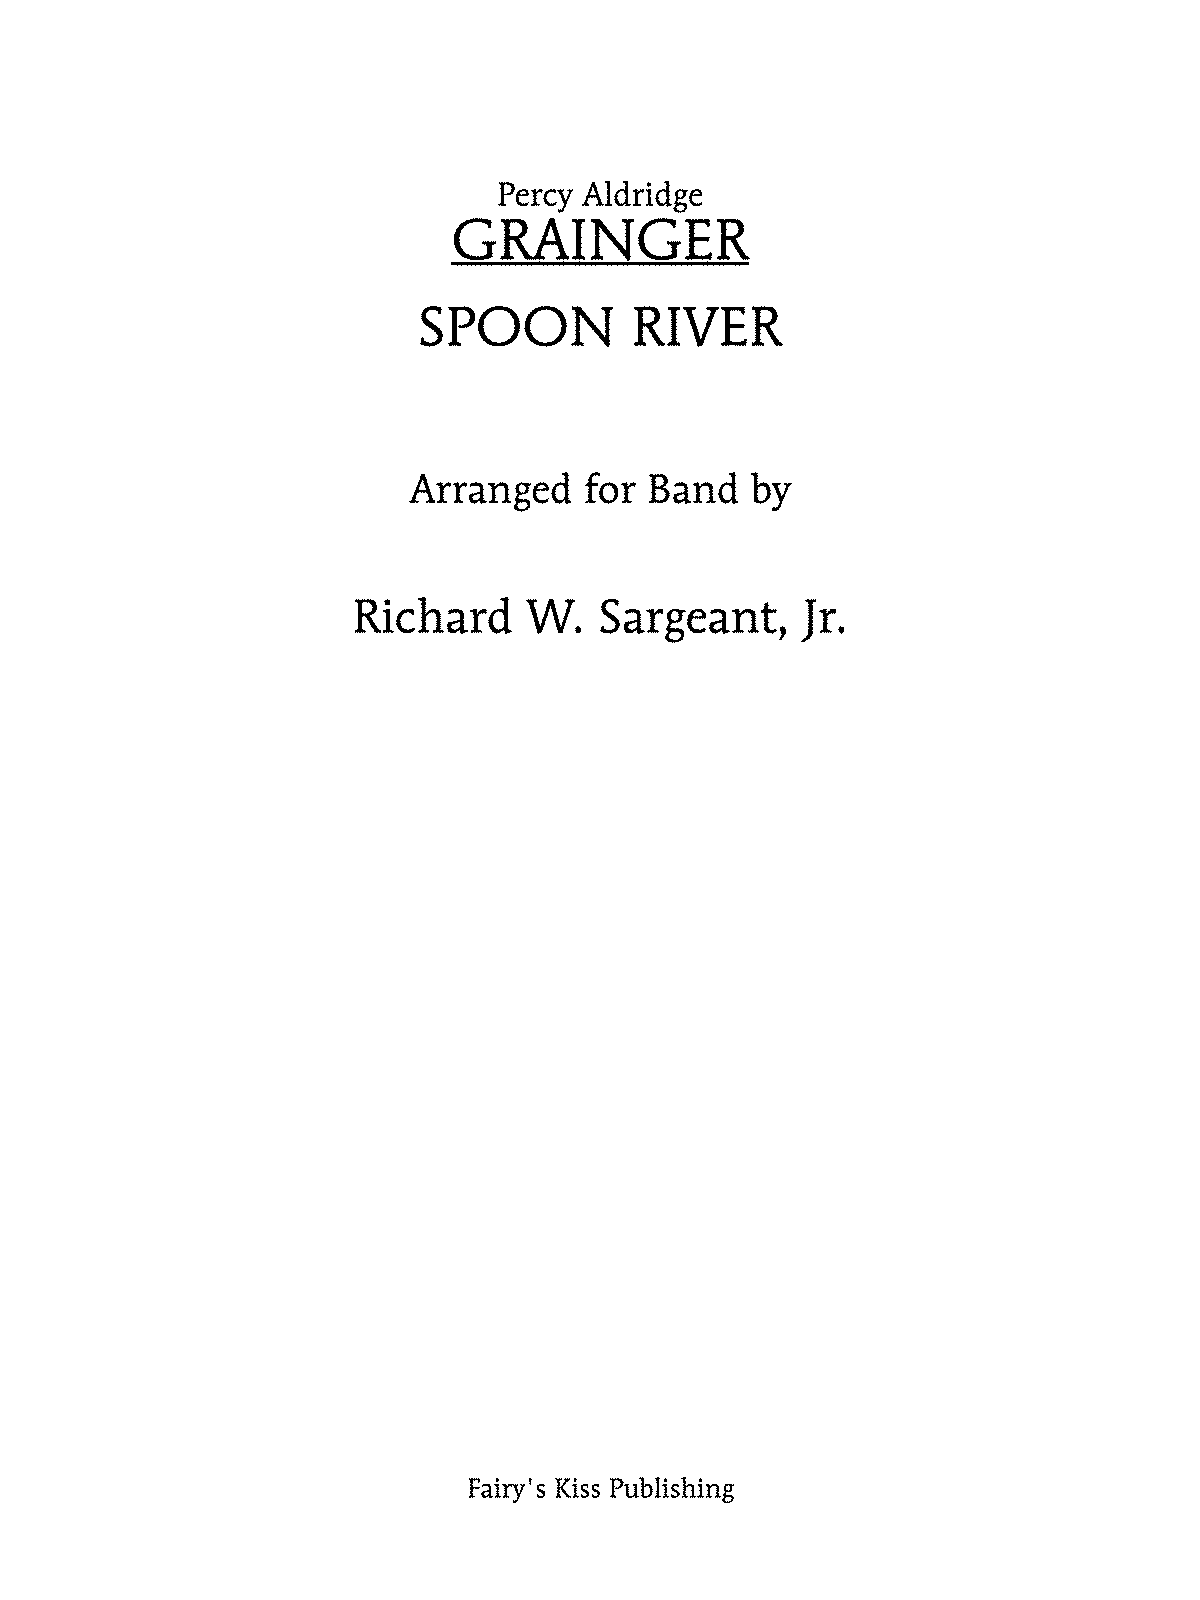 PMLP214610-Spoon river band1.pdf